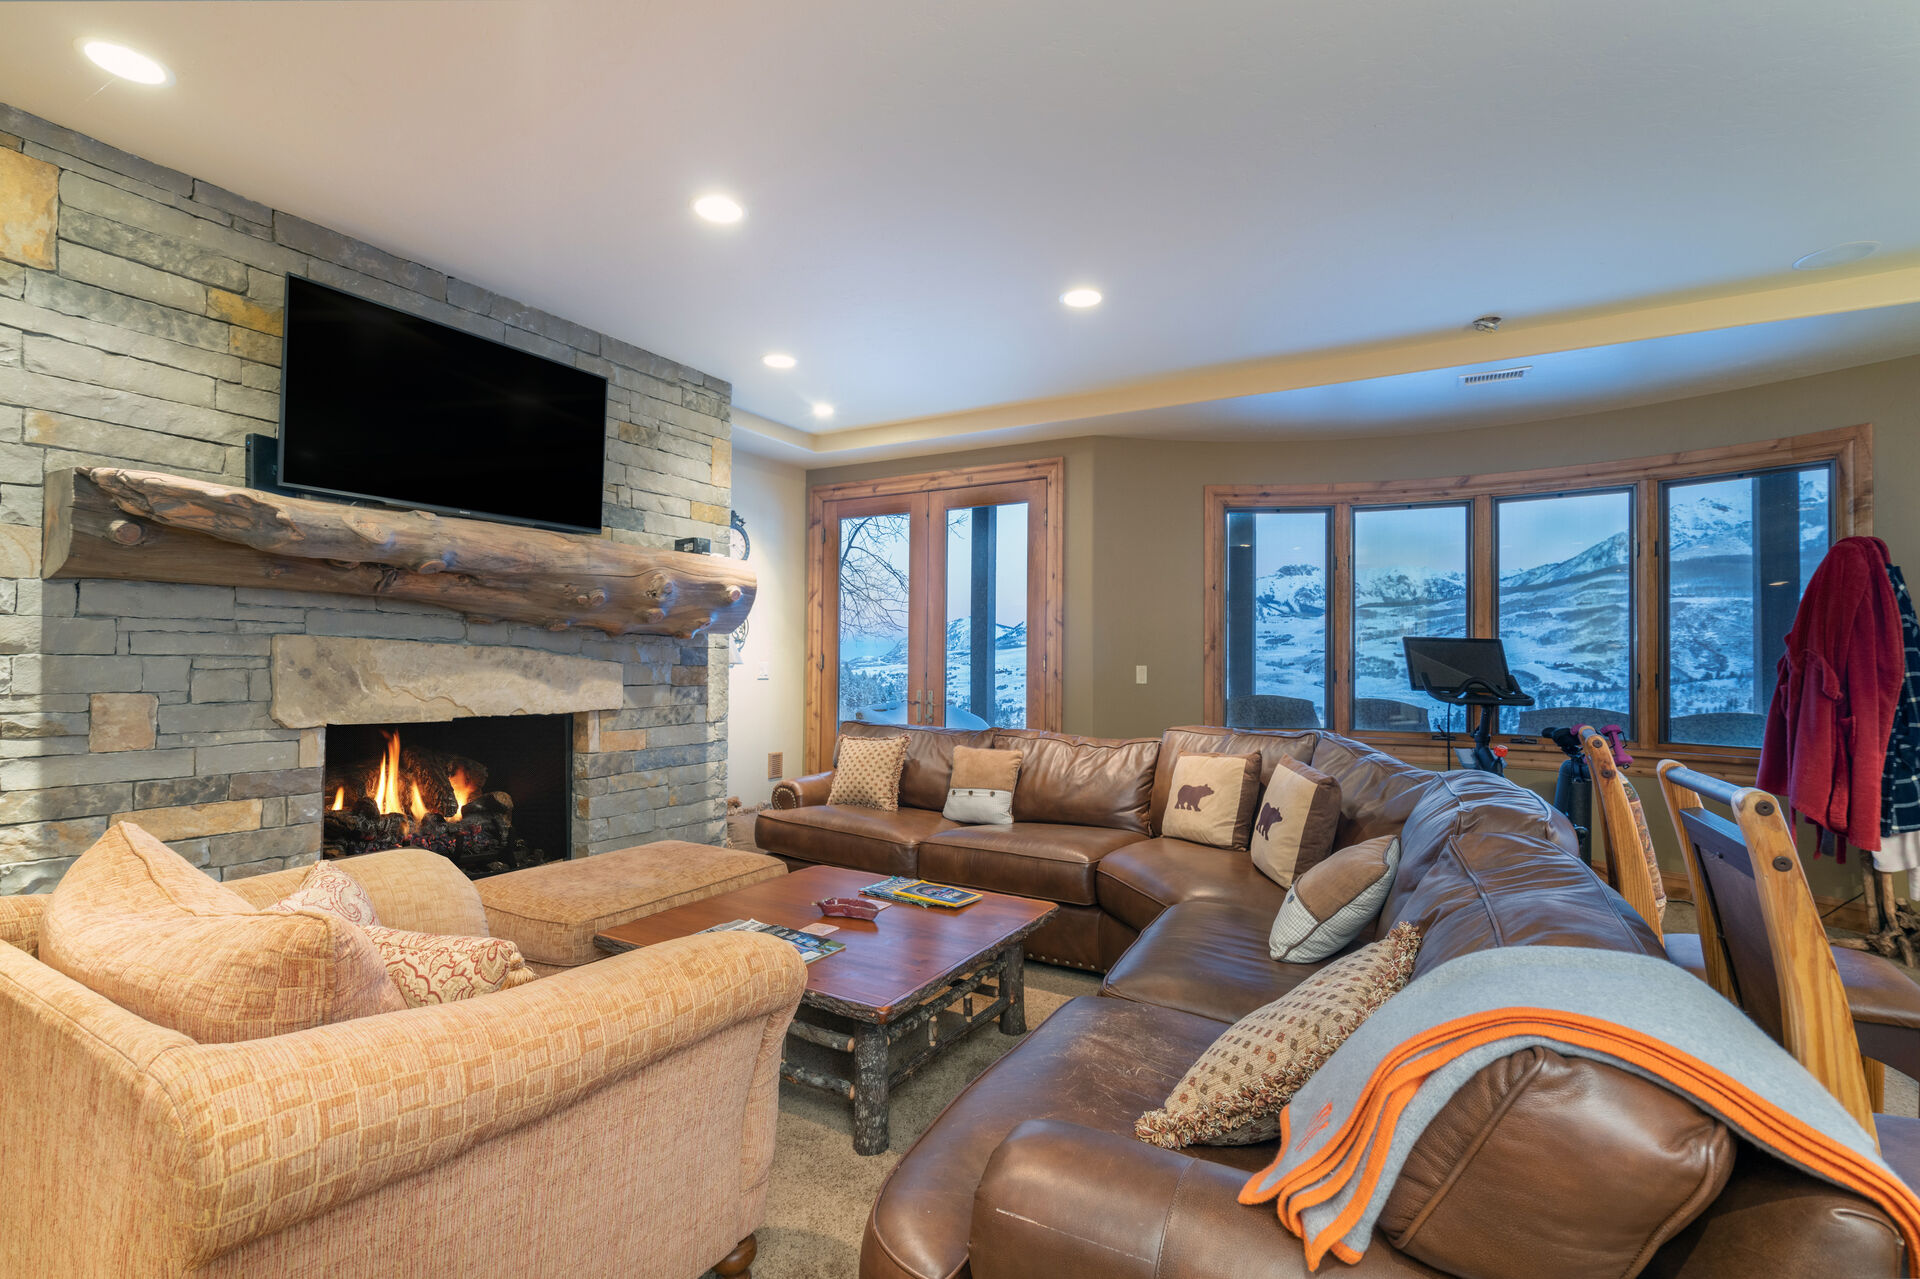 The living area of this Telluride golf rental is complete with a long sectional couch, armchair, fireplace, and TV.